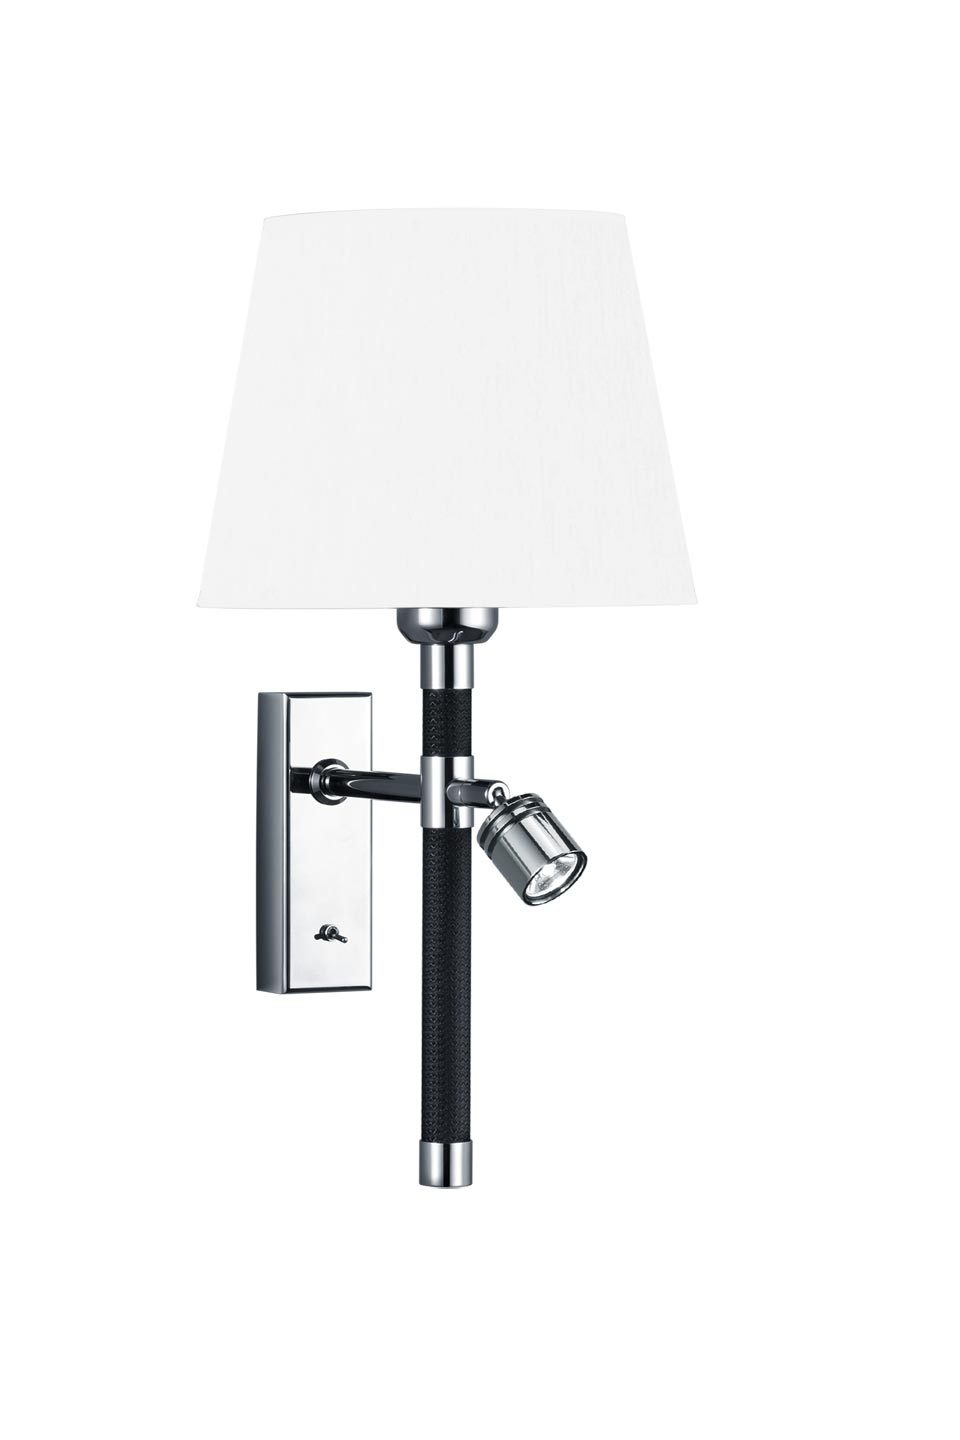 black and white Wall lamp + reading lamp. Baulmann Leuchten.